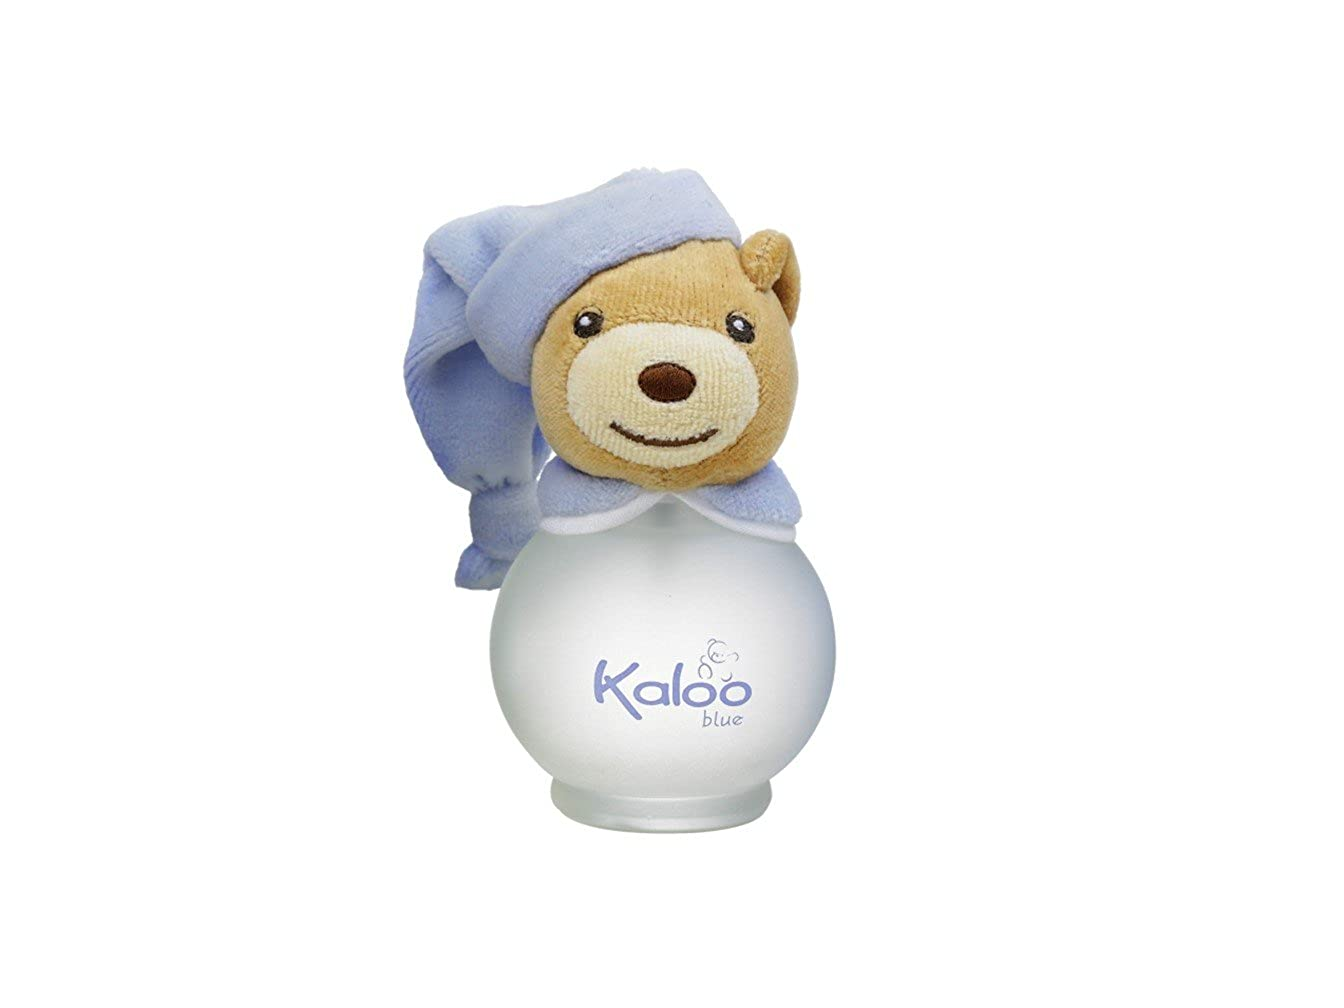 Amazon.com: Kaloo Blue Perfume Alcohol Free for Baby Boy, 3.4 Fluid Ounce: Beauty